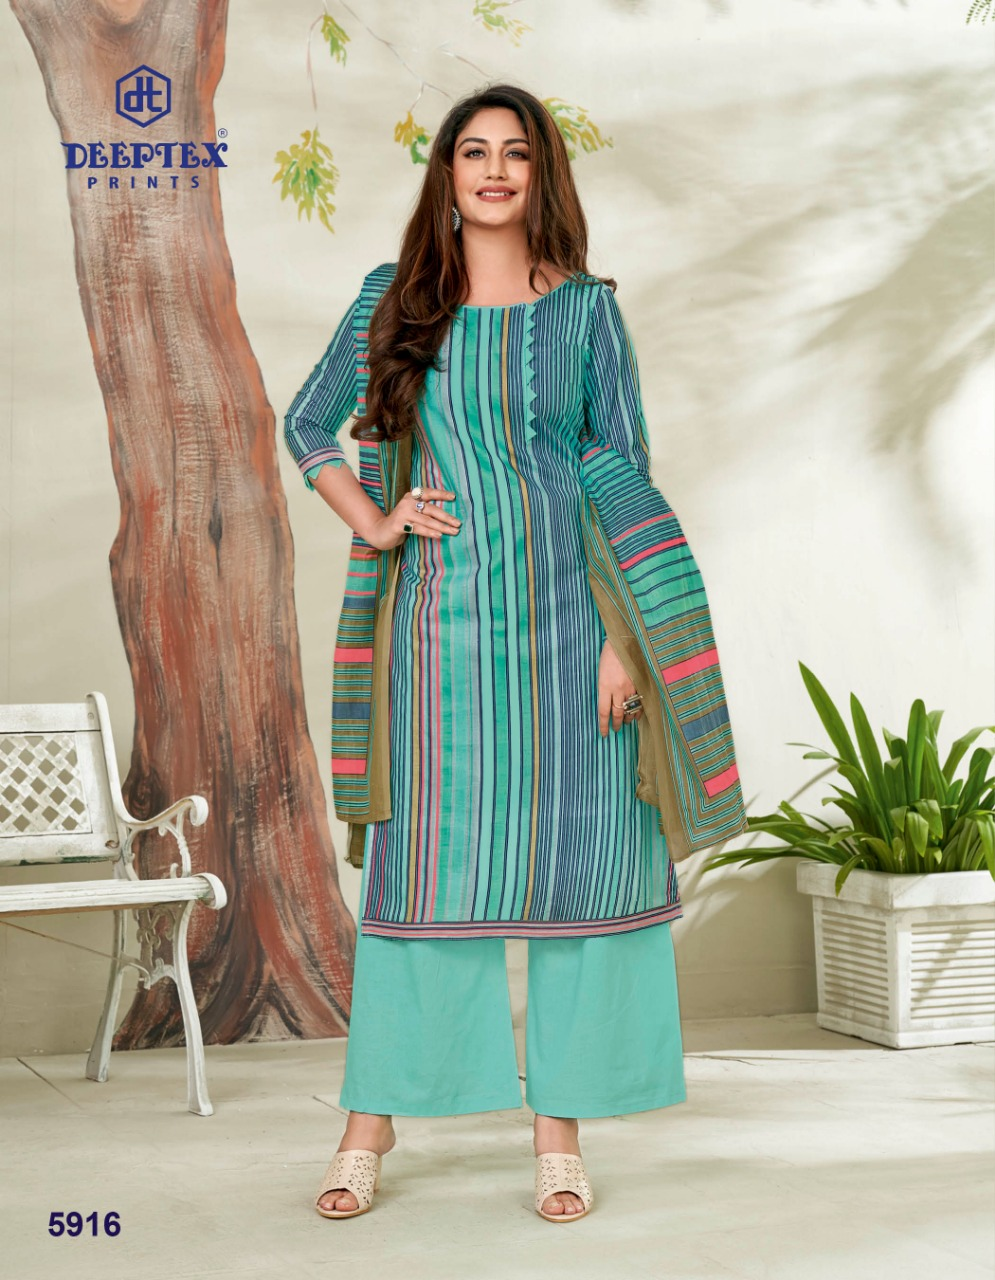 Deeptex Miss India 59 collection 8